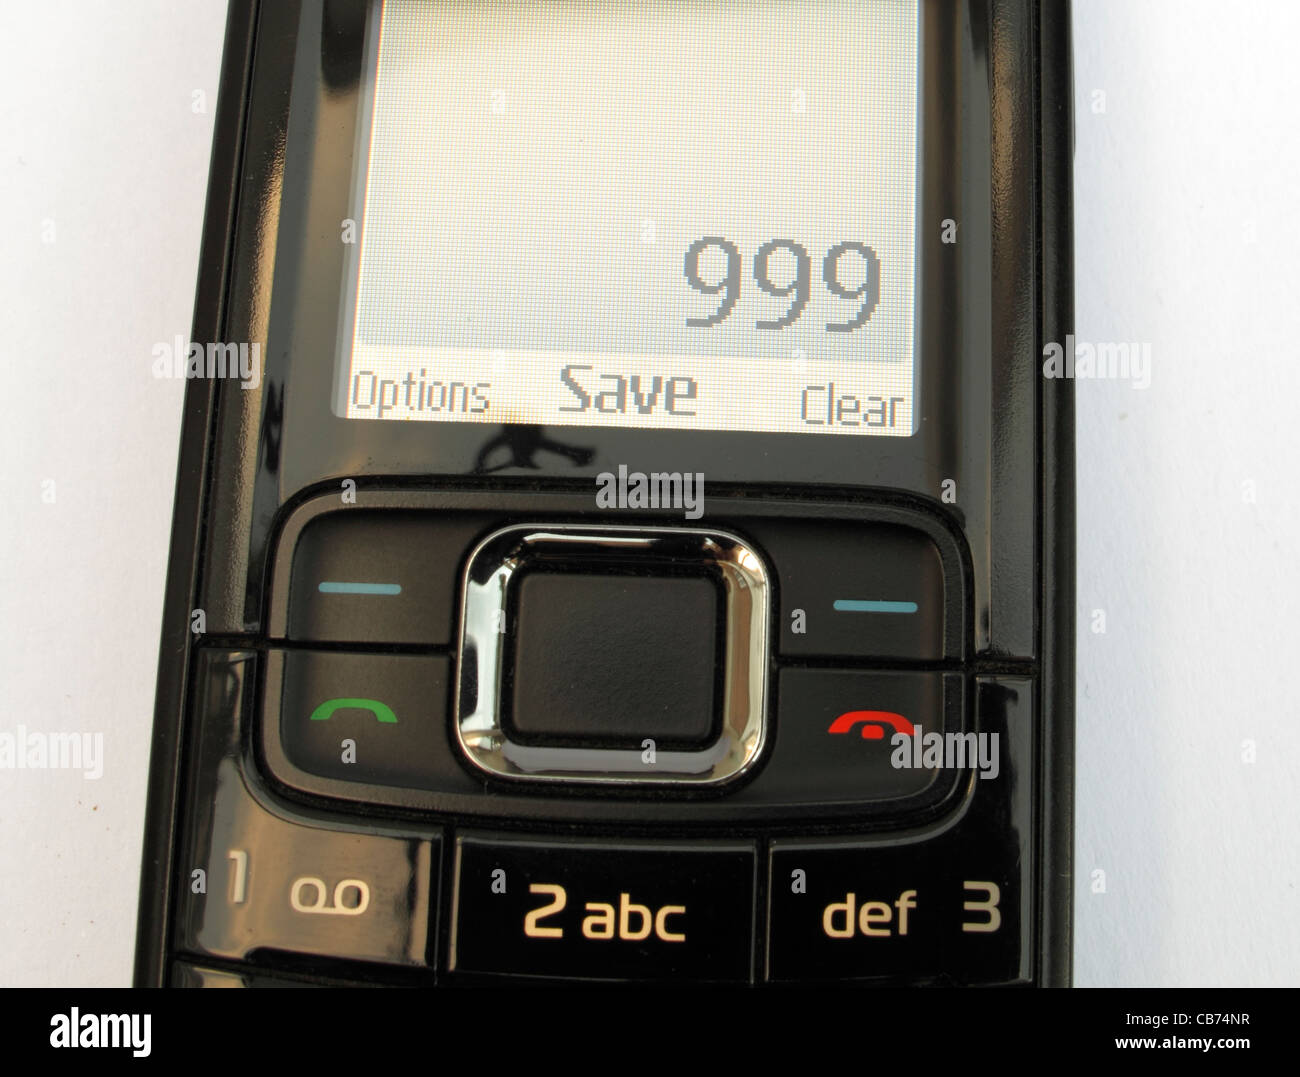 A simple Nokia mobile phone on a white background closeup of the screen showing 999 UK emergency services number - Stock Image